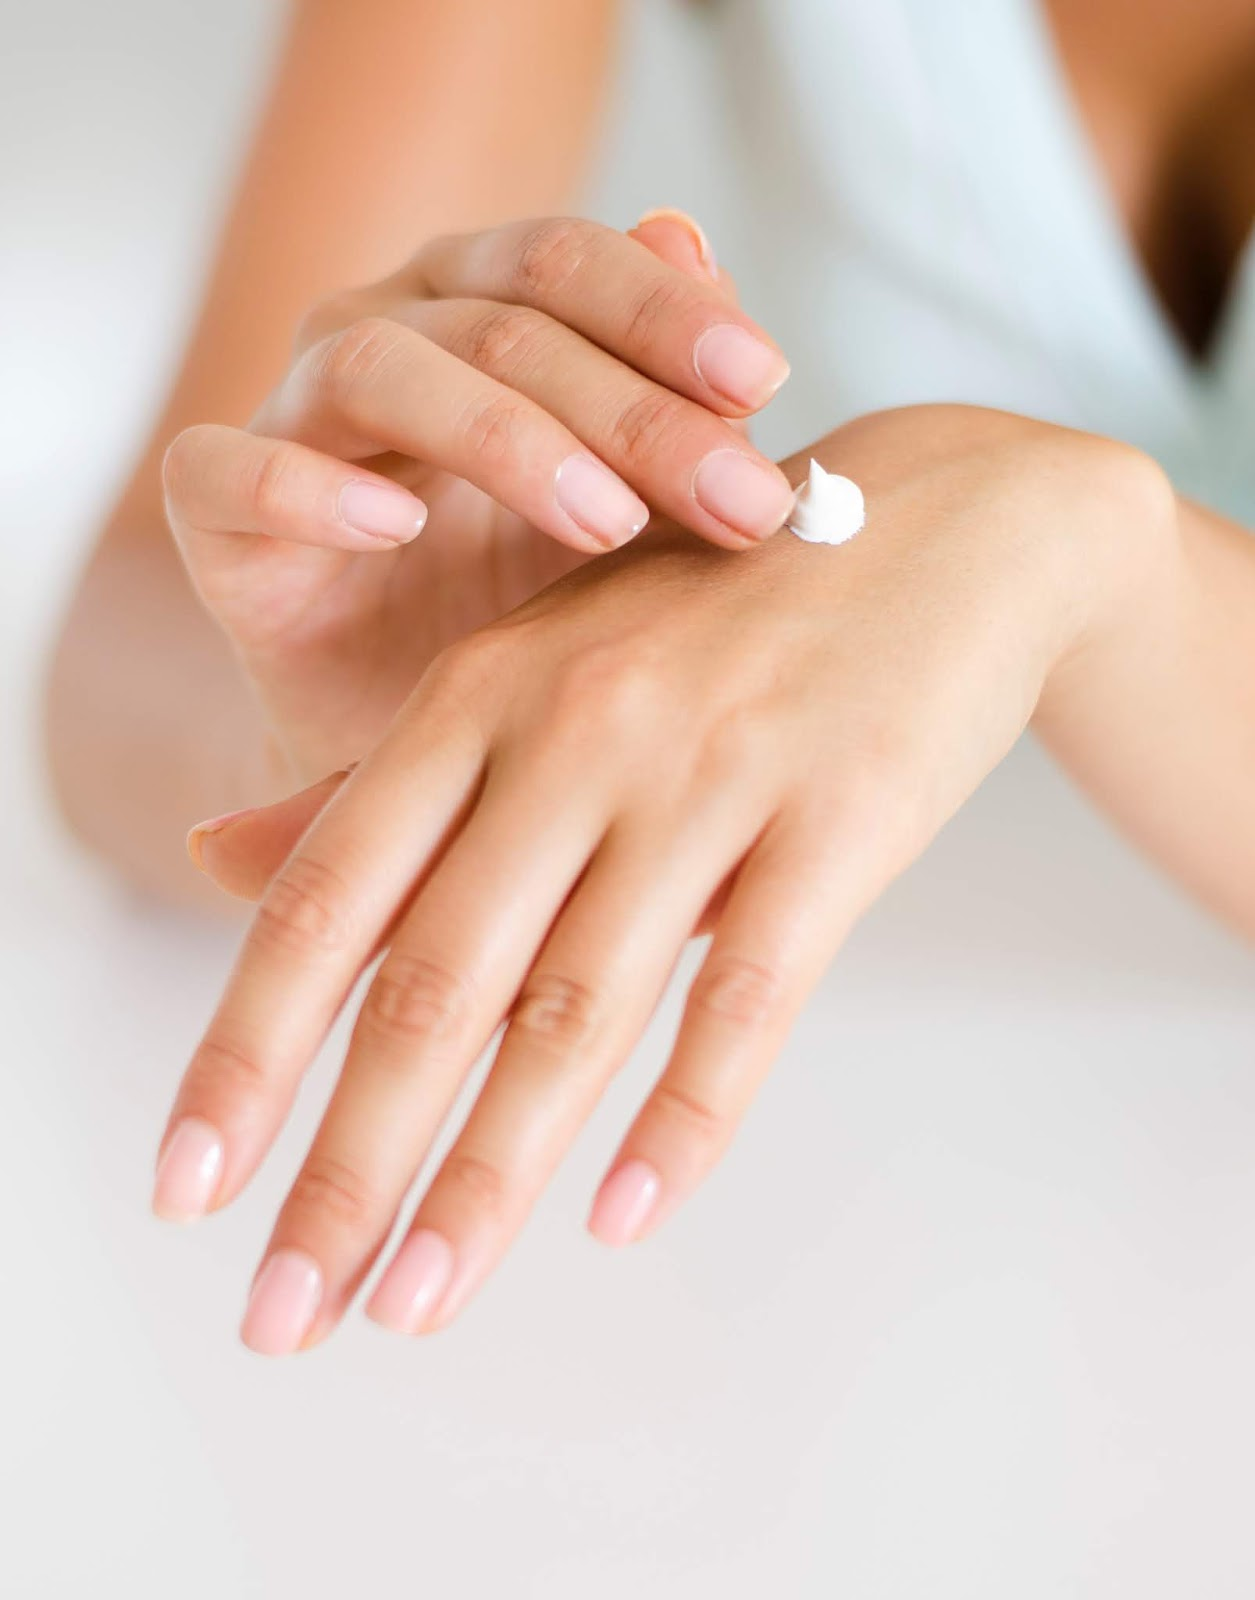 Keep Skin Moisturized - Daily Practices to Prevent Acne